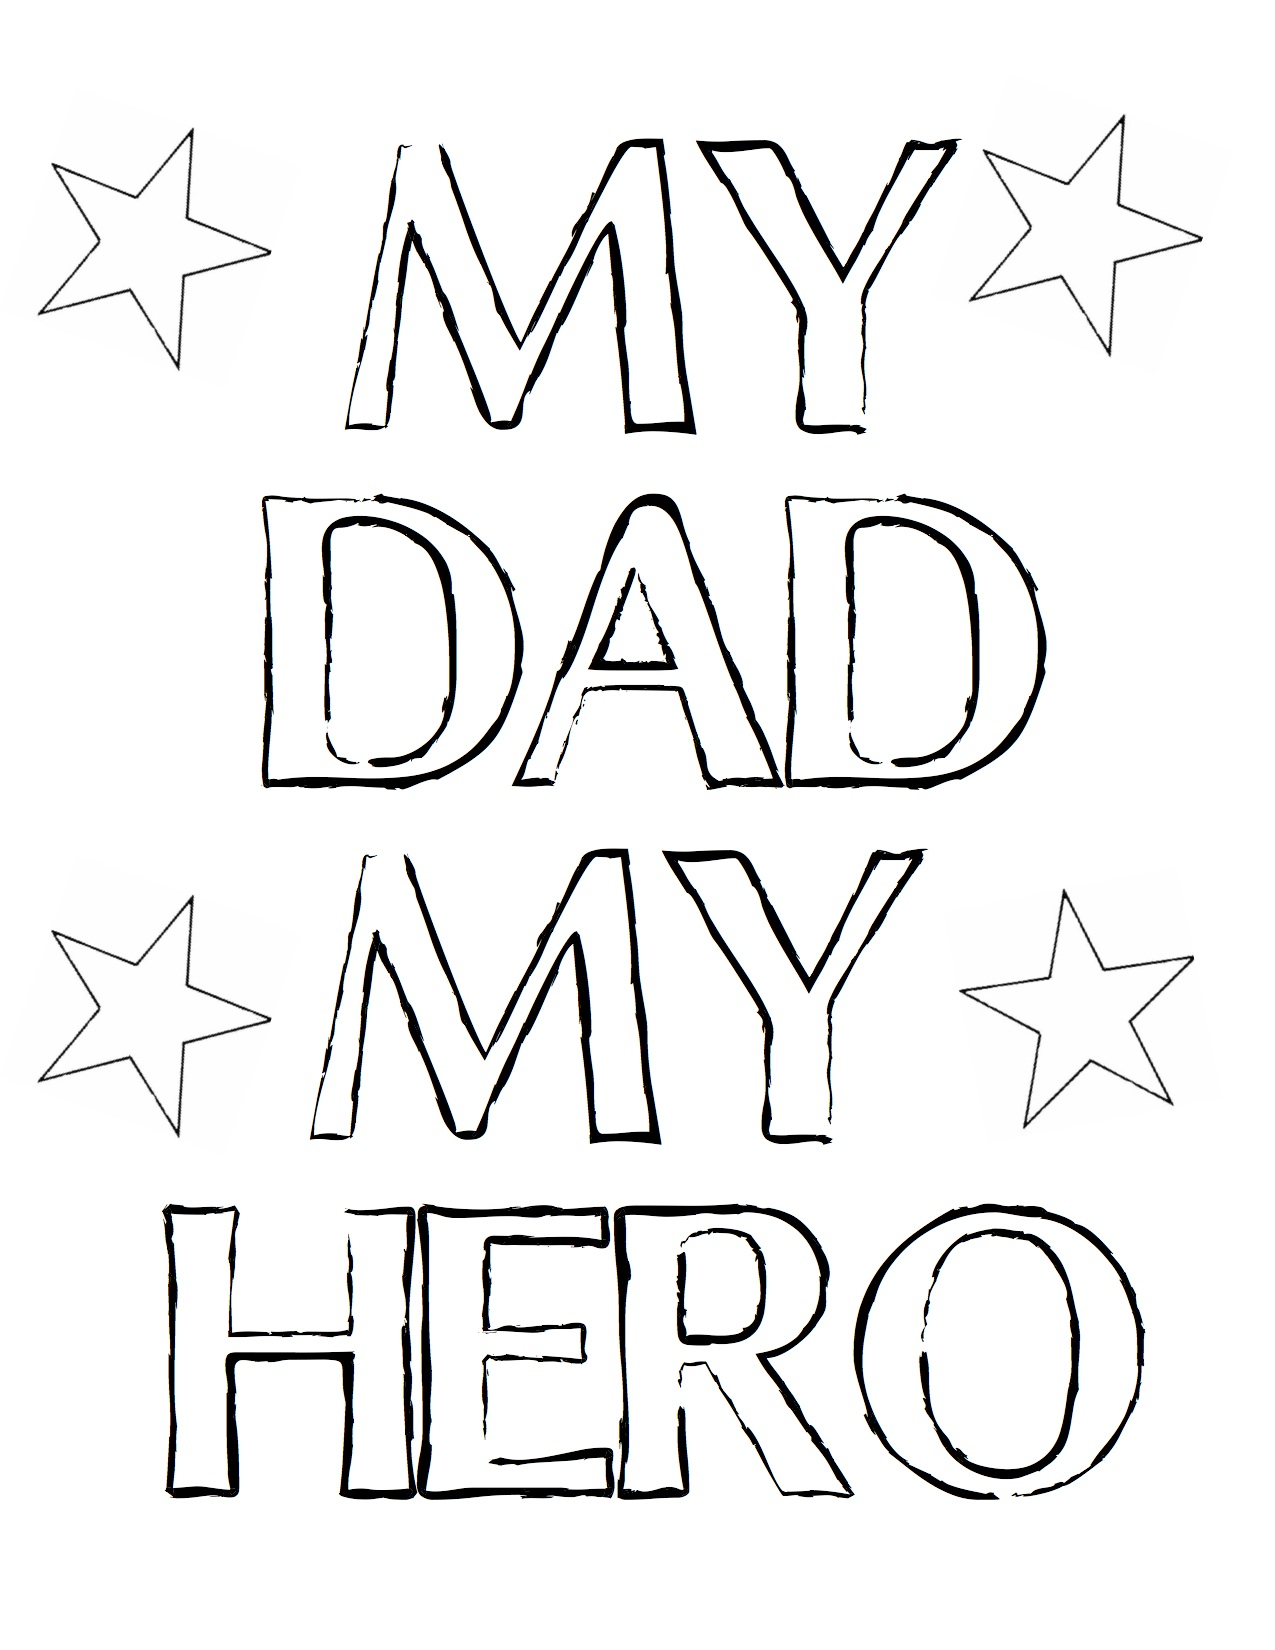 I Love You Dad coloring page | Free Printable Coloring Pages | 1650x1275